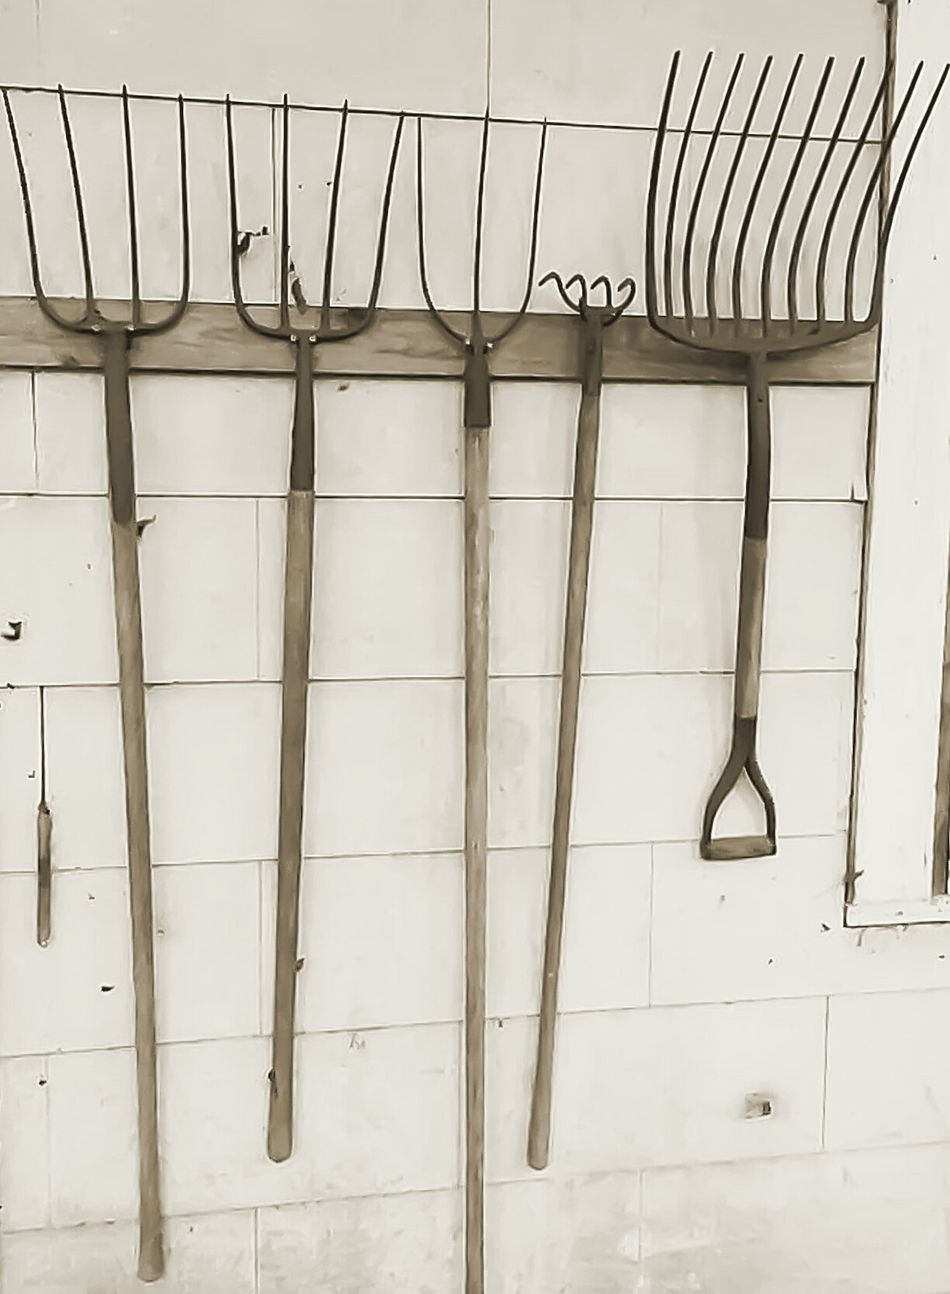 Hanging No People Architecture Day Outdoors Pitch Fork Farm Rakes Old Farm Equipment Antique Vintage Sharp Sharp Objects Lawn Care Farm Tools Tools Group Of Objects Big To Small Sizes Dangerous Things Behind You Antique Farm Equipment Vintage Tools Sharp Things White Background